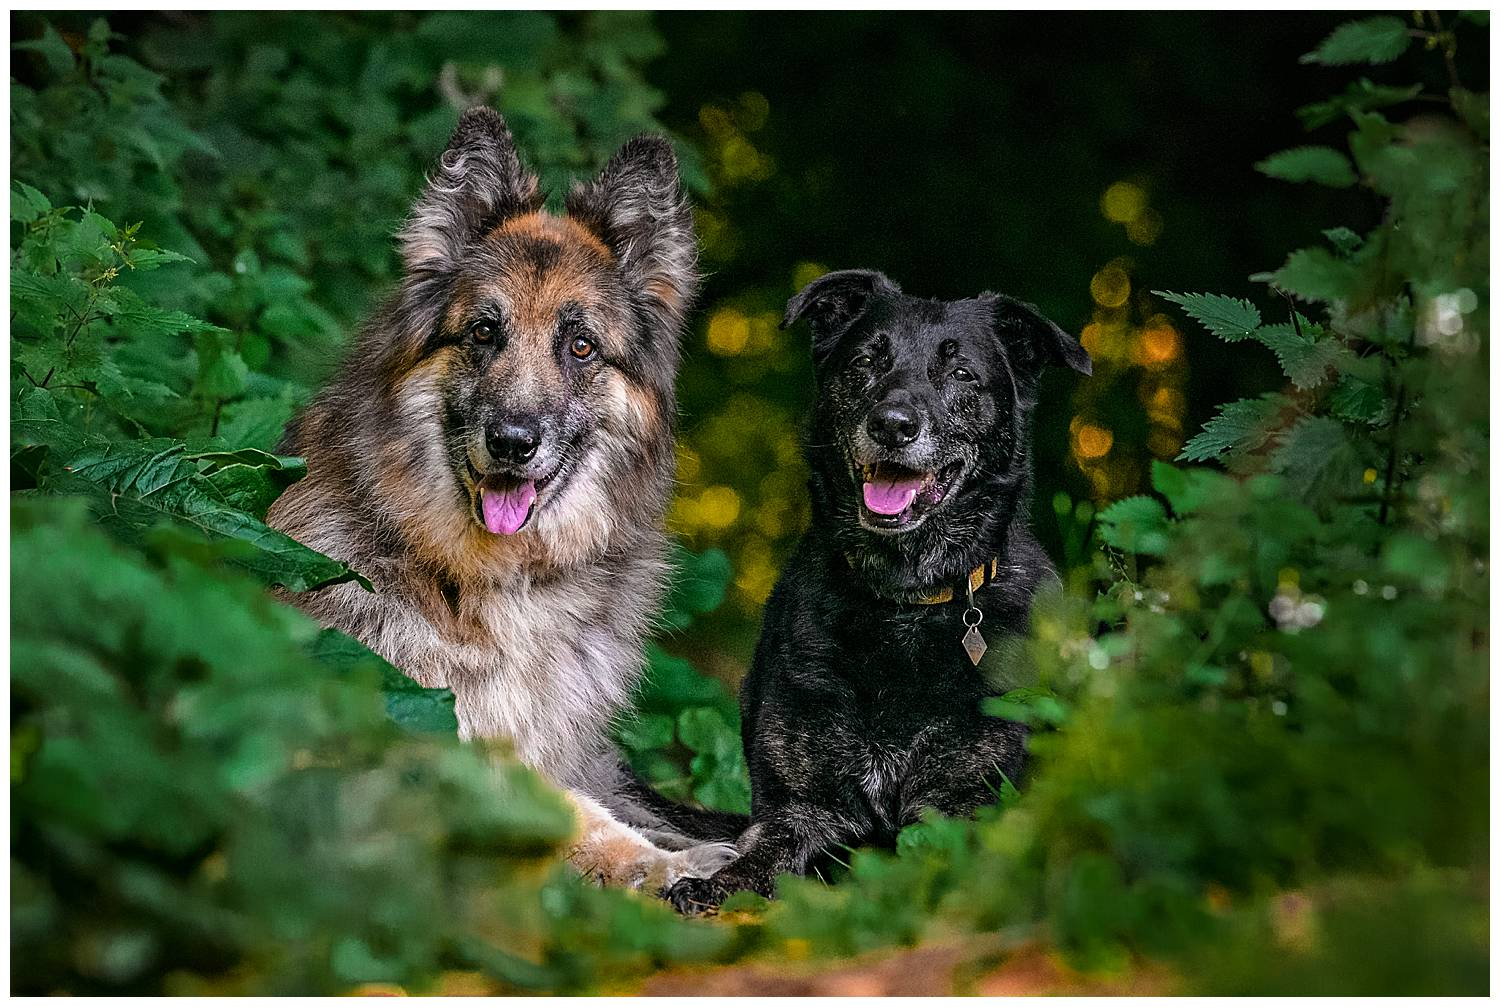 When photographing older dogs it important to let them rest. This portrait photo is of two dogs lying on the forest floor resting